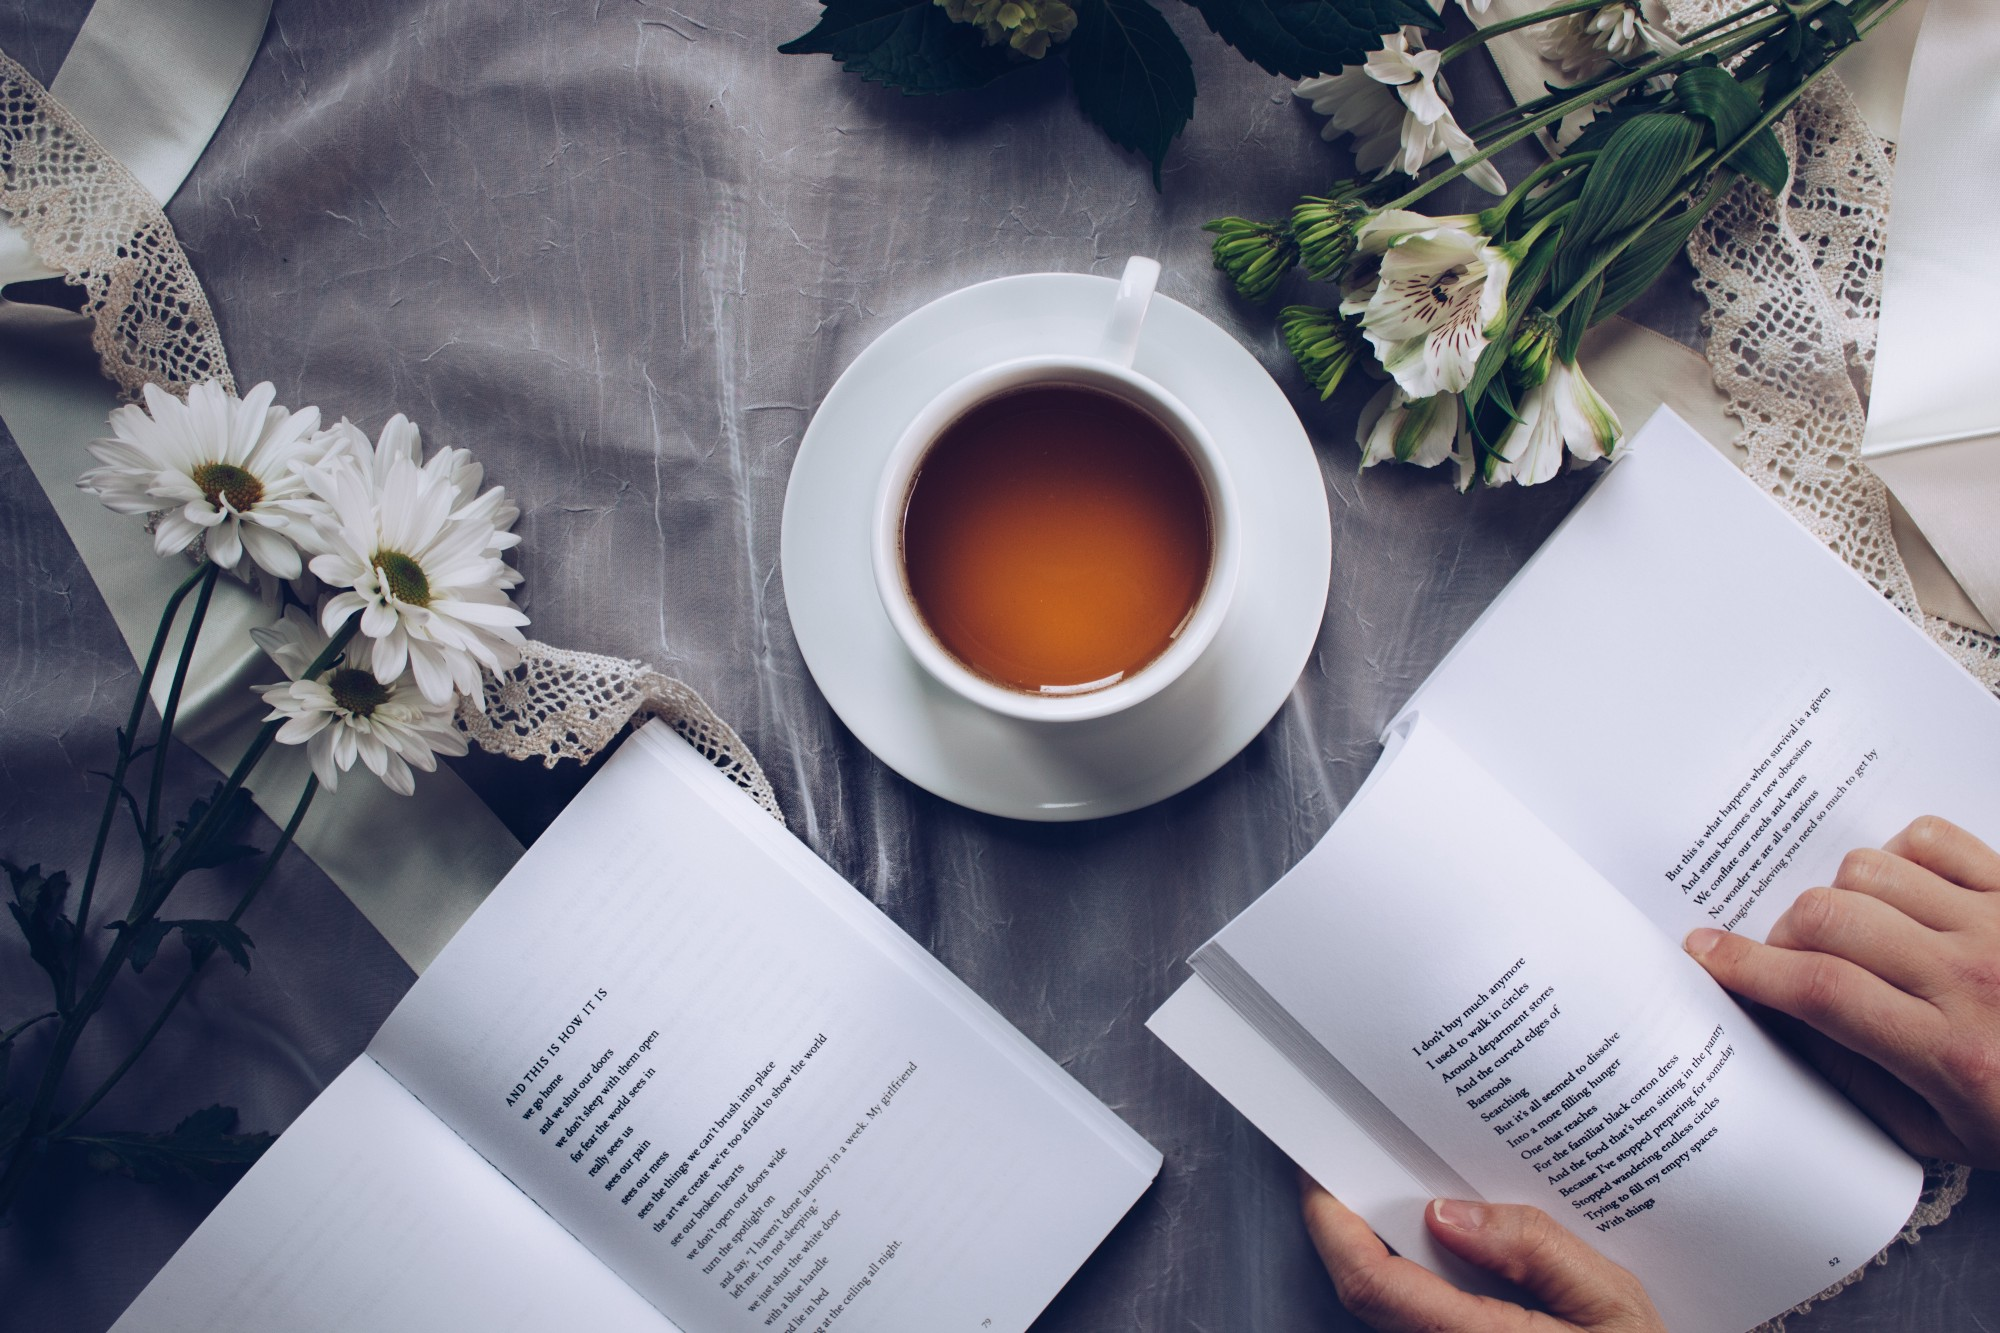 A cup of tea, books of poems, and flowers on a table with a gray tablecloth